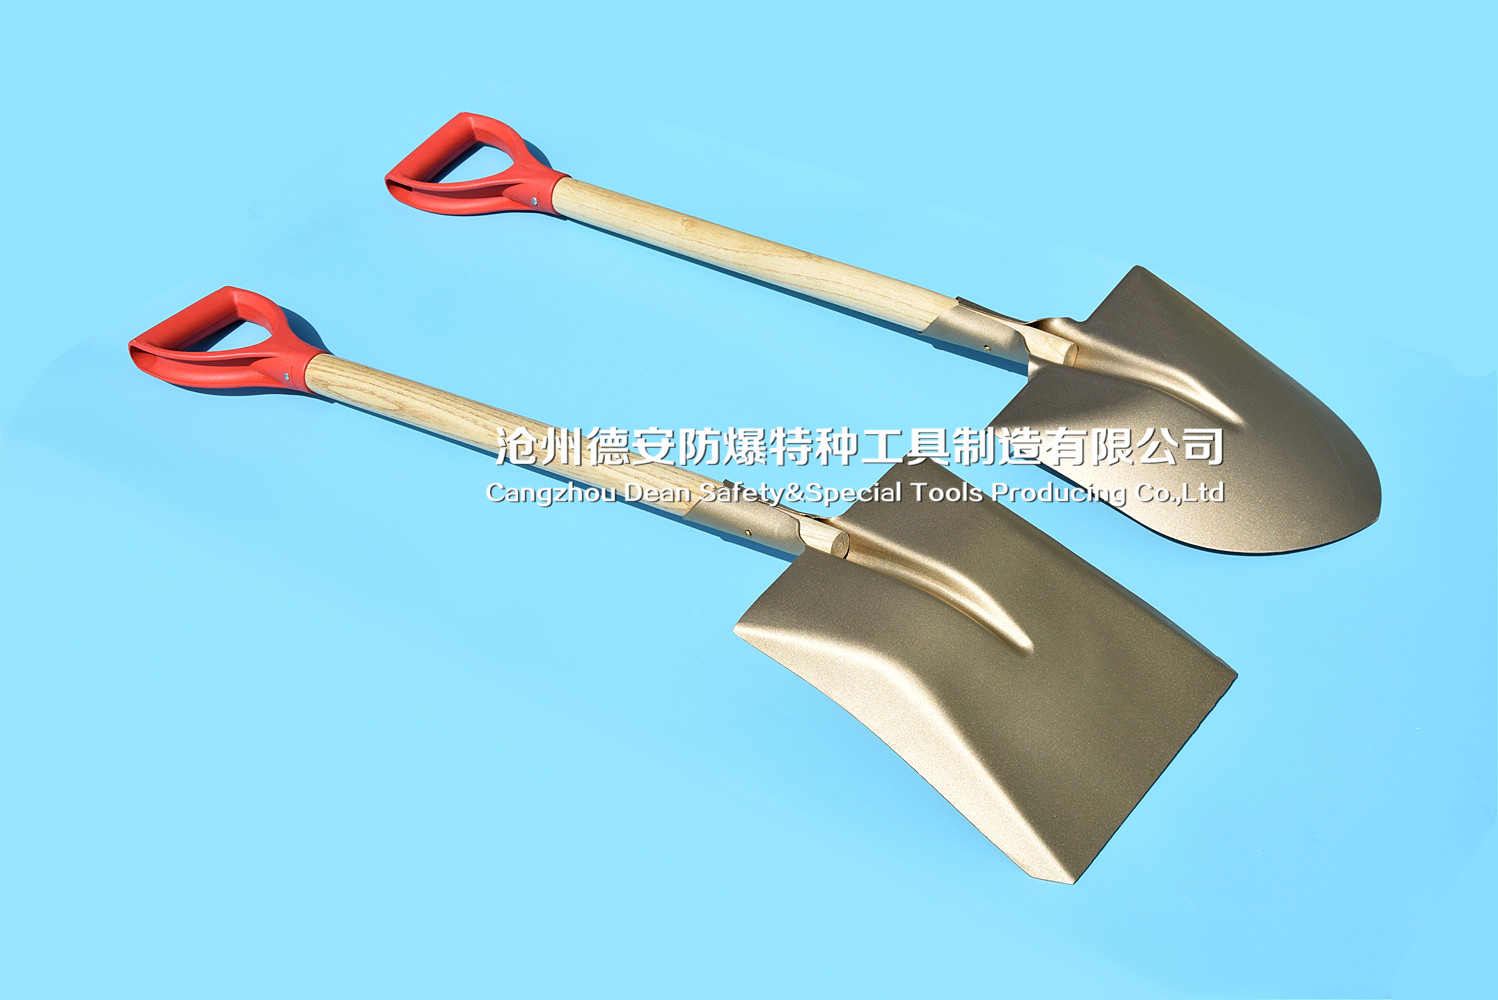 DEAN TOOLS NON SPARKING SQUARE SPADE SHOVEL BRASS TOOLS WOODEN HANDLE